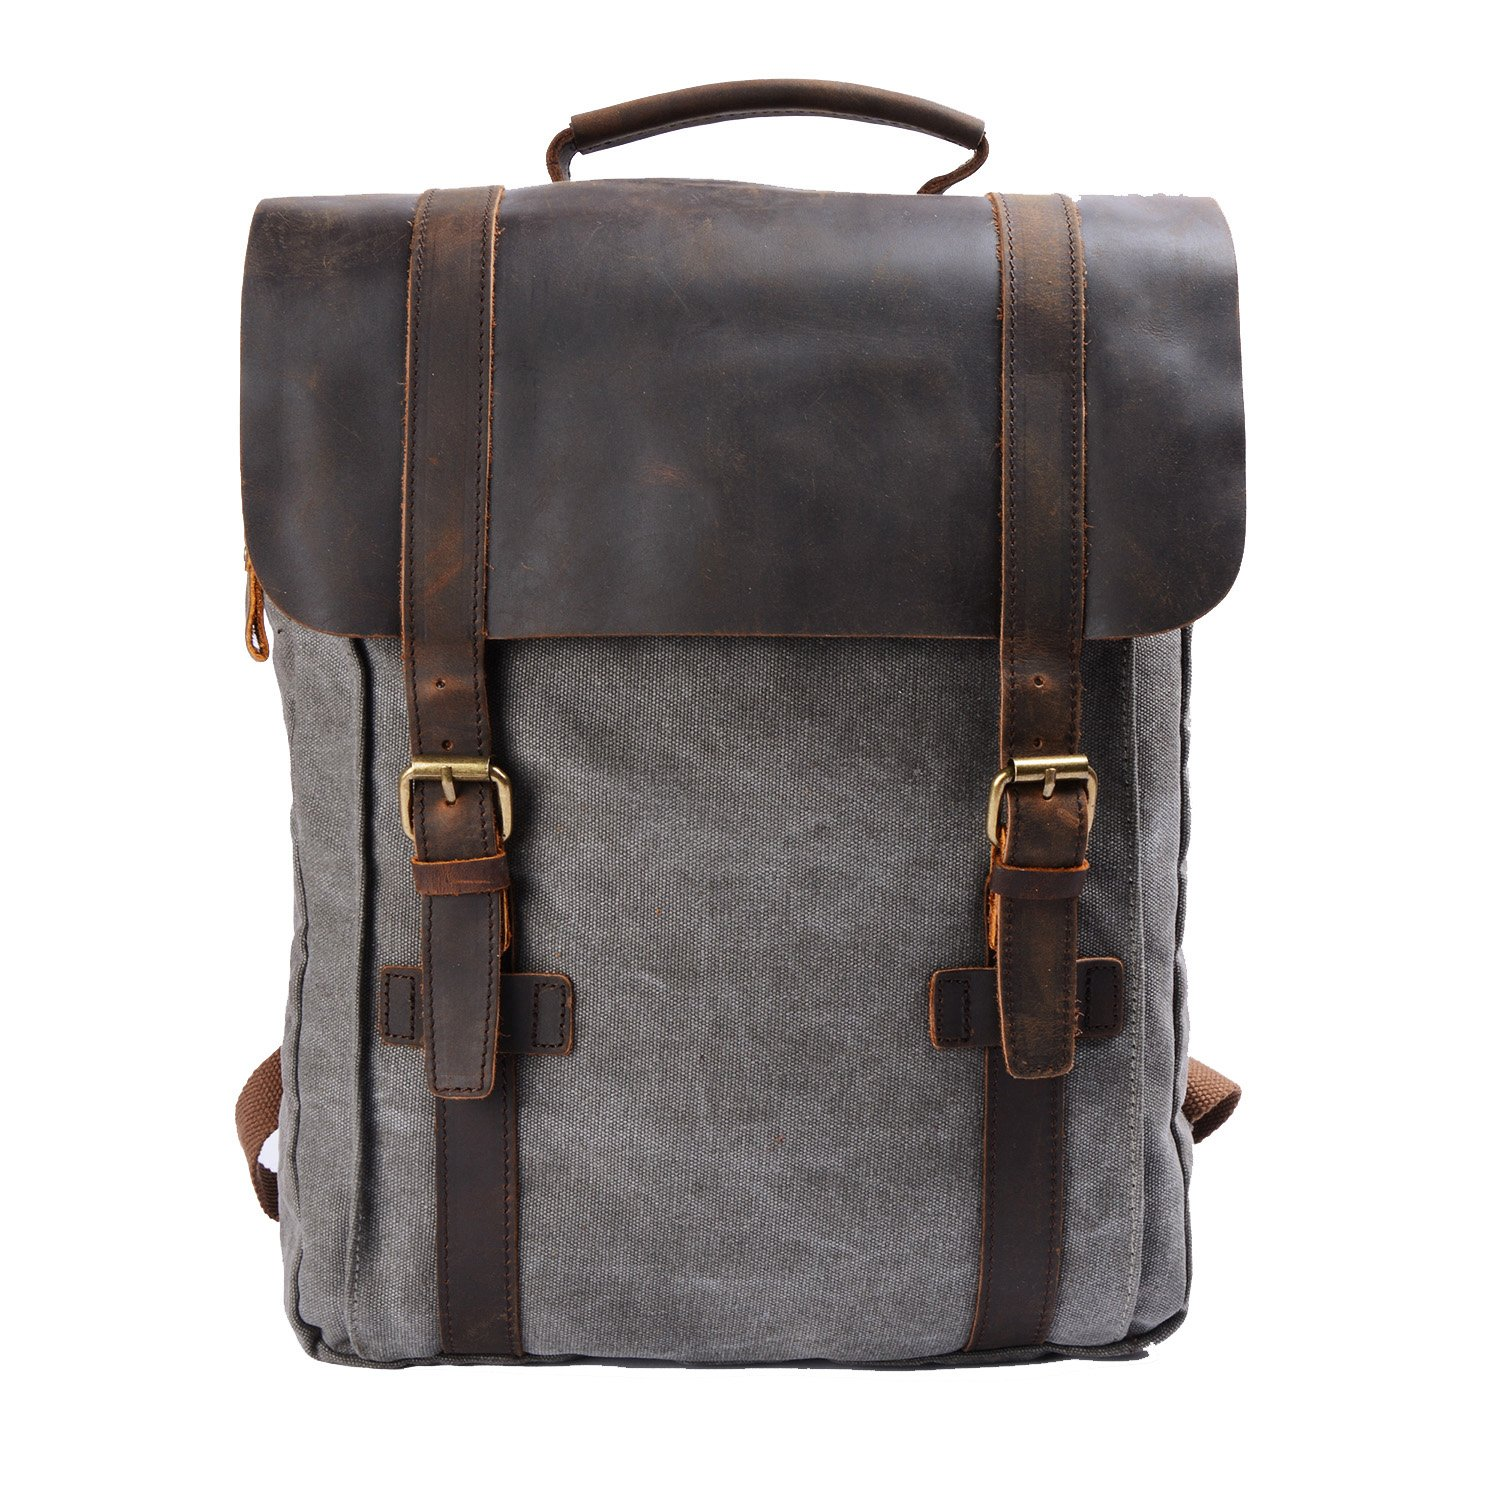 S ZONE Retro Canvas Leather School Travel Backpack ...